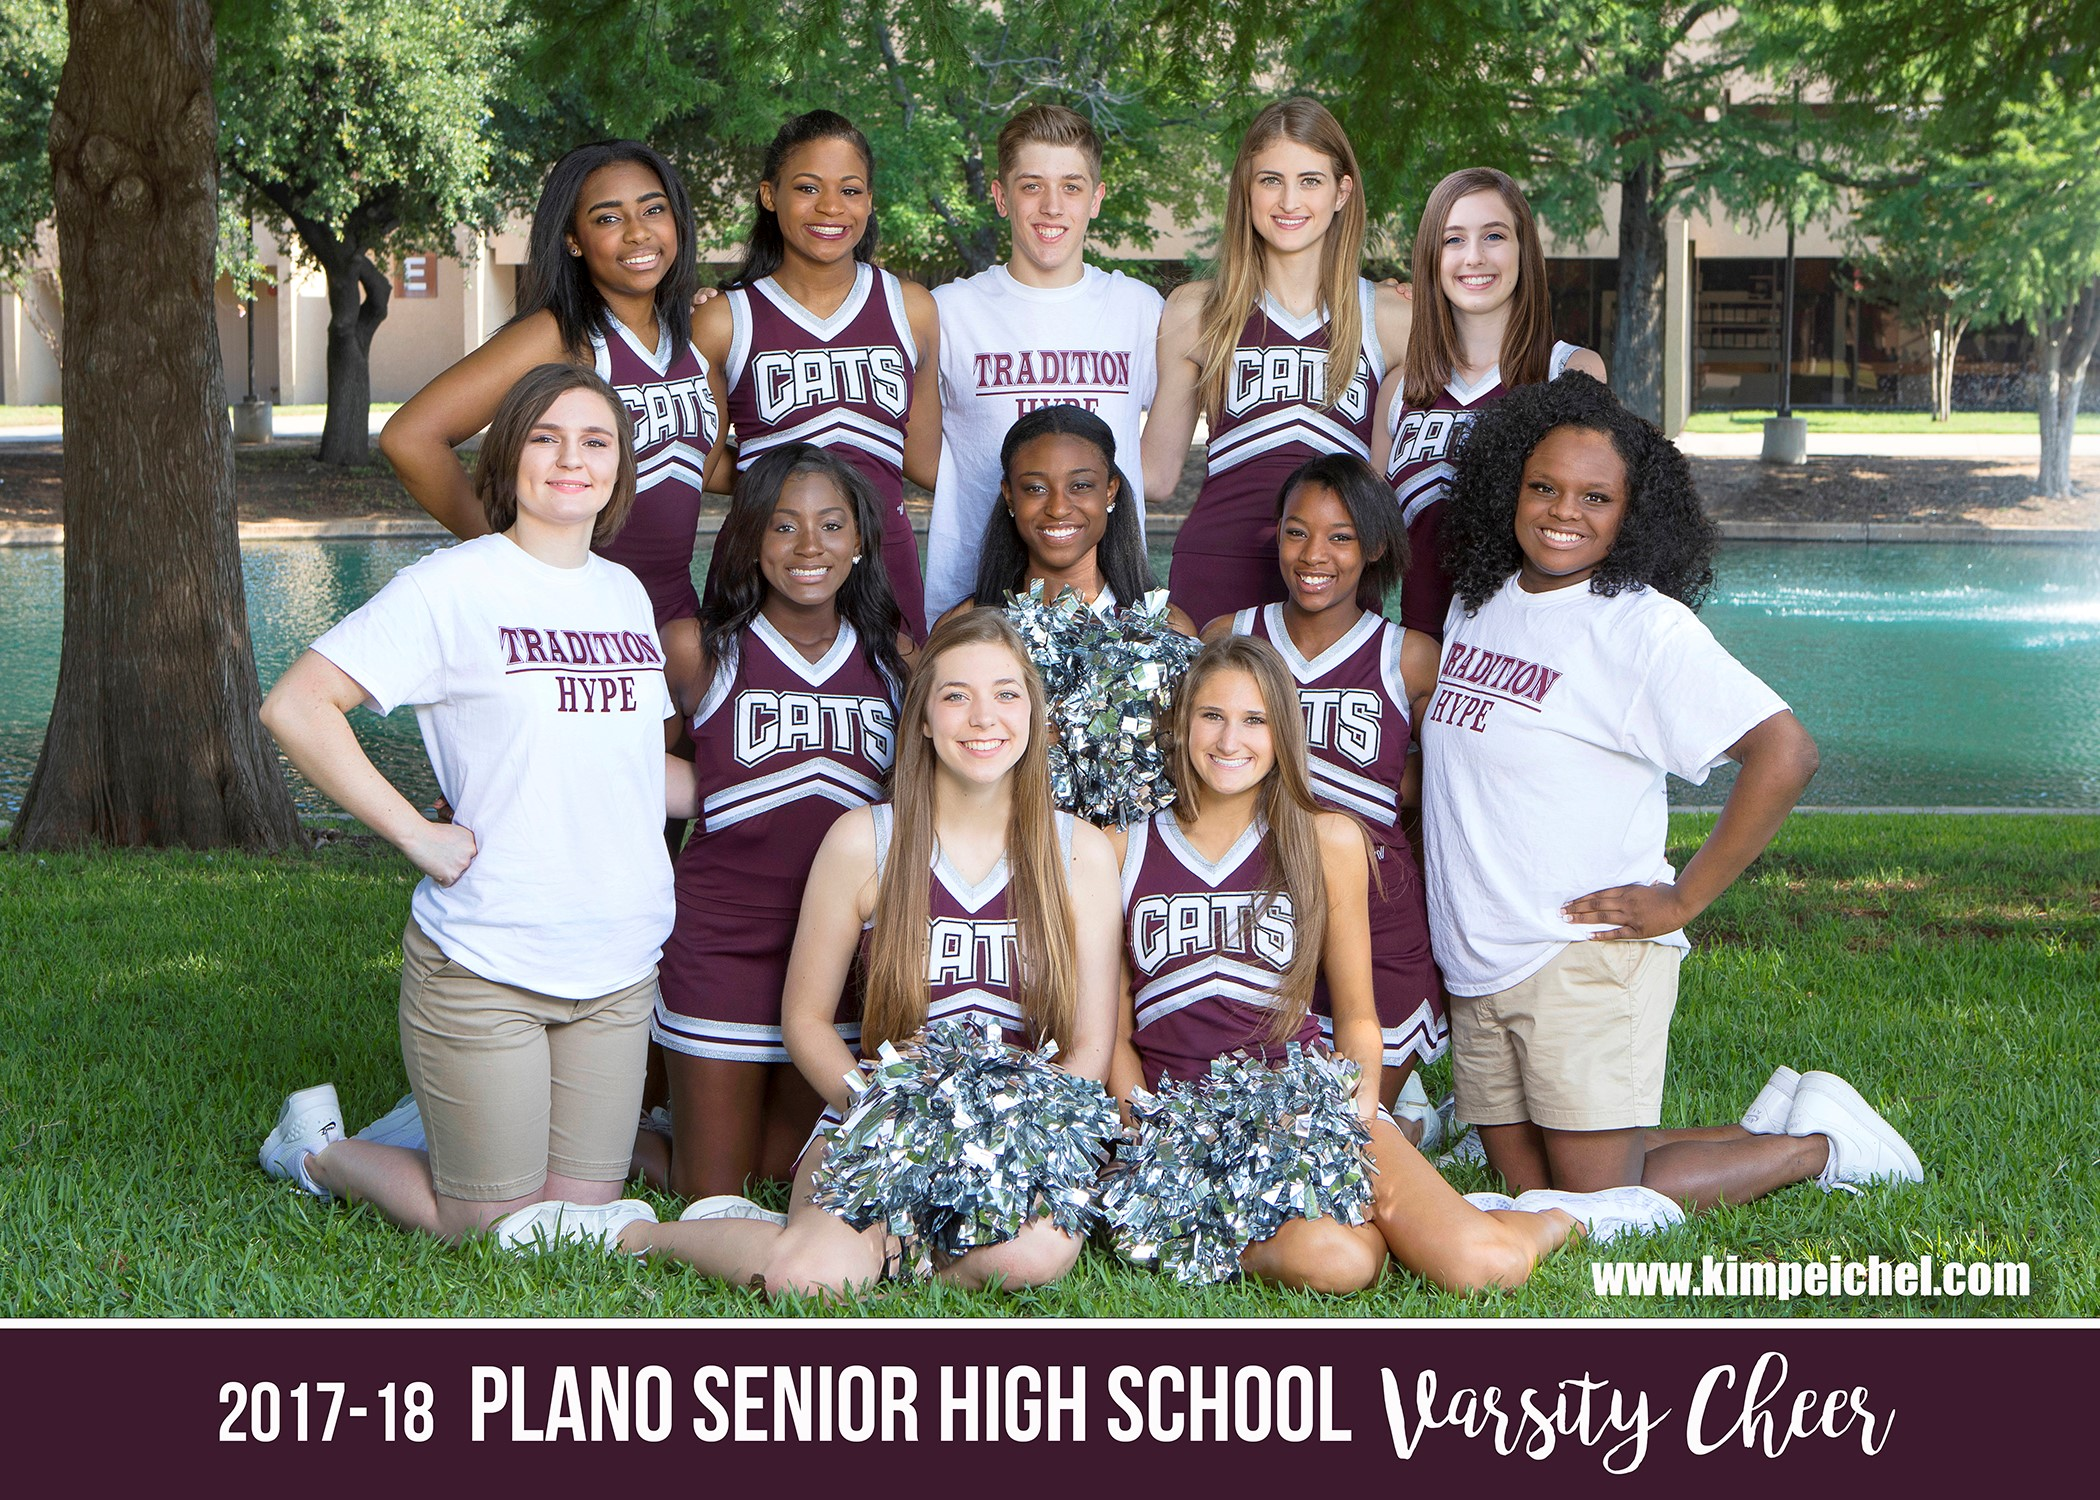 2017-2018 PSHS Varsity Cheerleaders